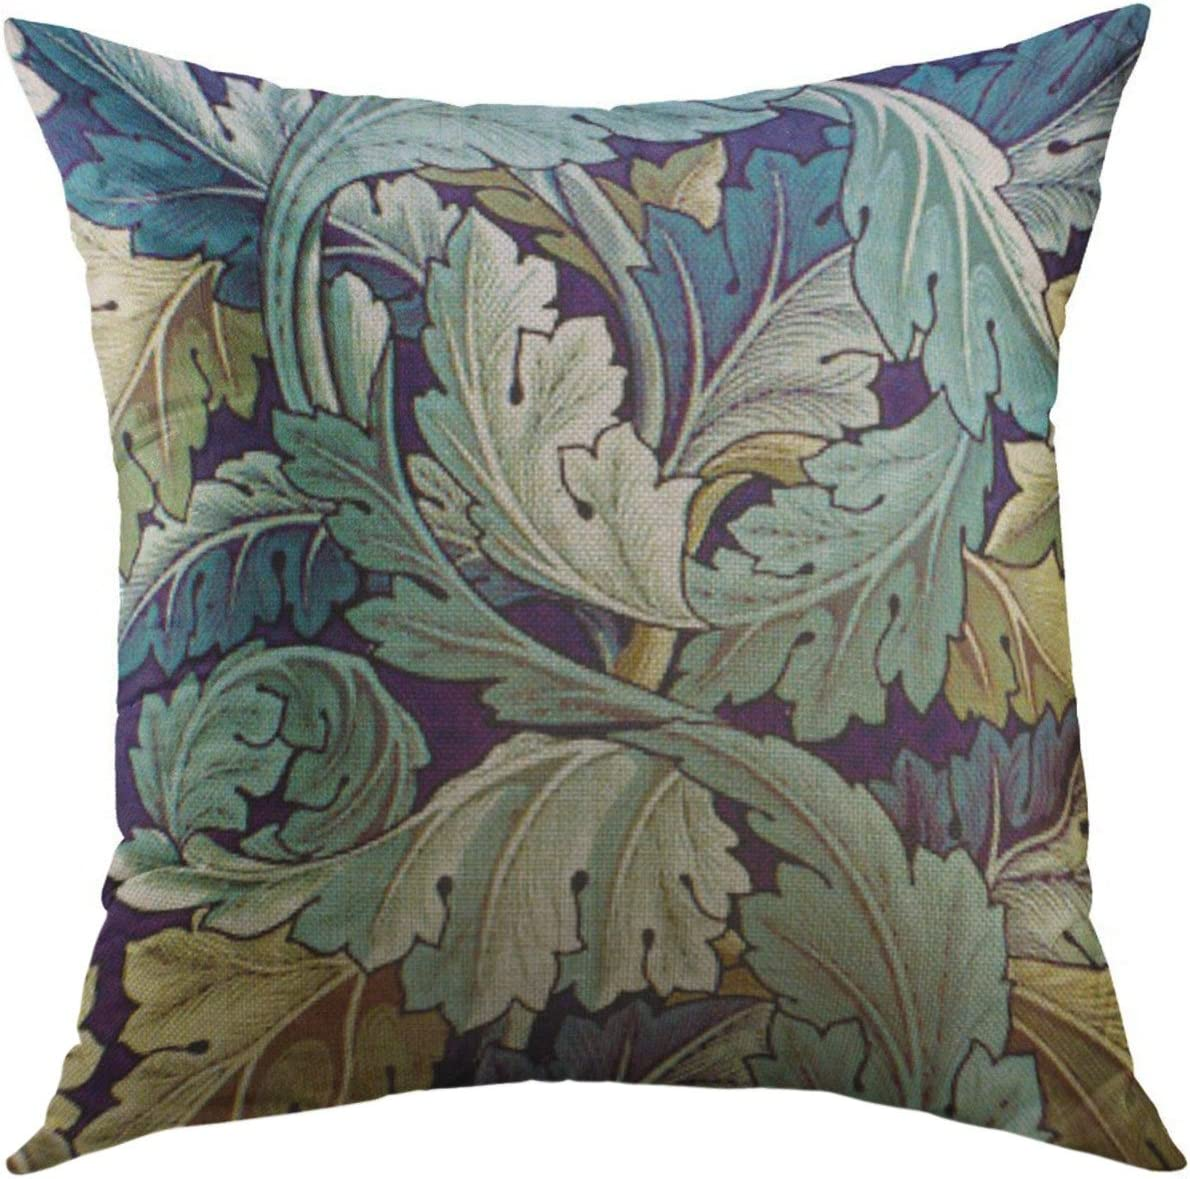 Amazon Com Mugod Pillow Cases Leaf Acanthus Leaves Throw Pillow Cover For Men Women Boys Cushion Cover 20x20 Inch Home Kitchen